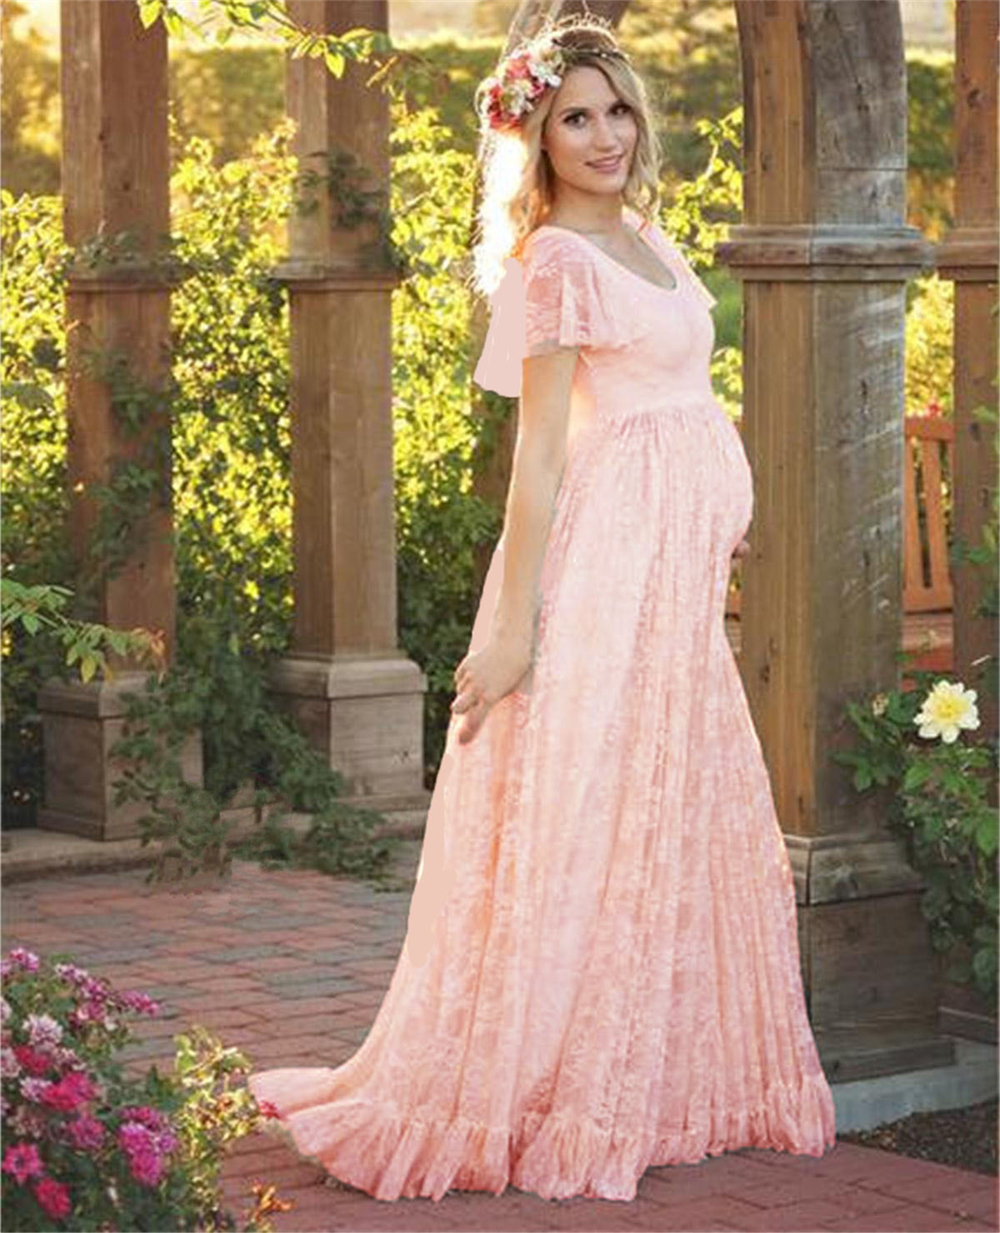 2018 Plus Size Maternity Dresses For Photo Shoot Fashion Lace Maxi Maternity Gown Dress Women Pregnancy Clothes Photography Prop plus size lace trim maxi dress